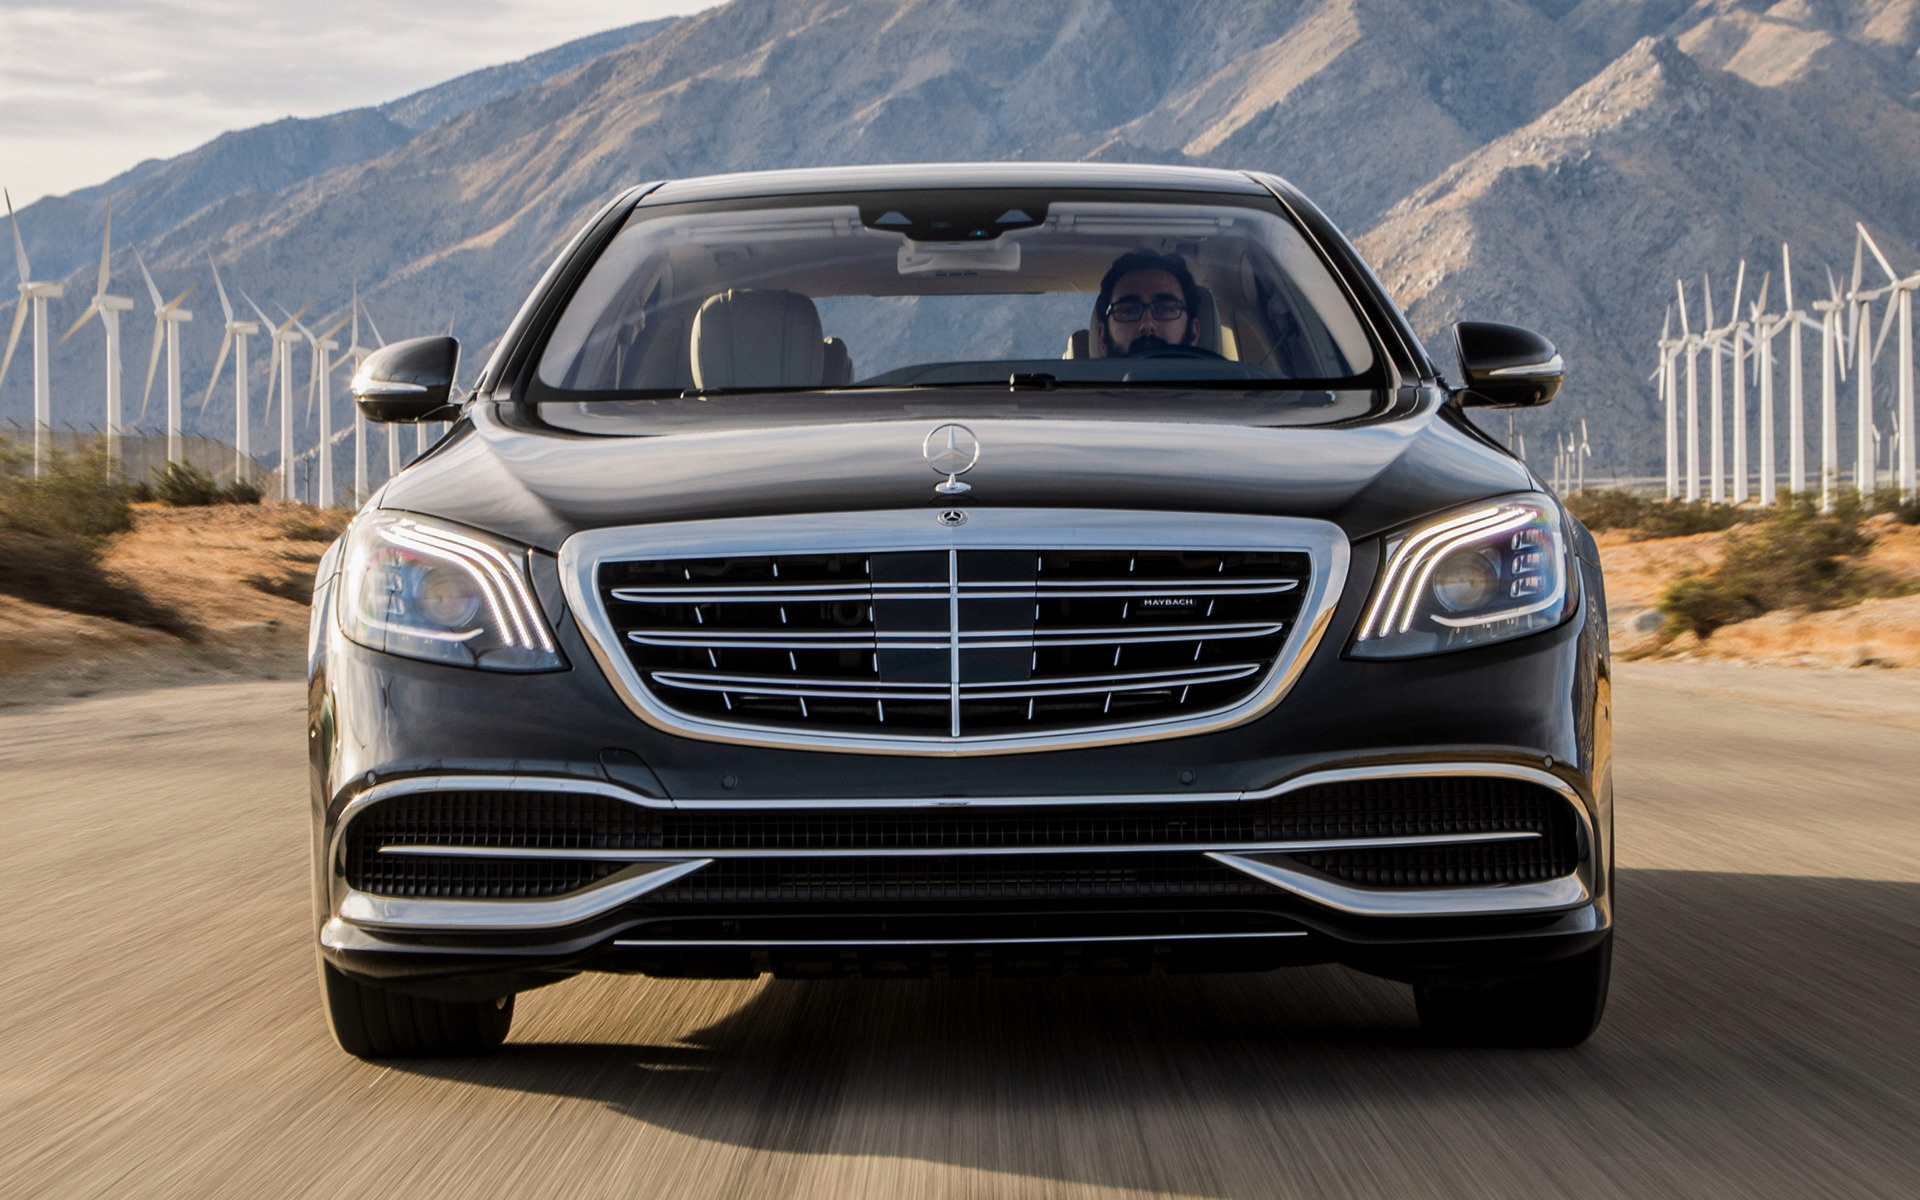 2018 mercedes-maybach s-class (us) - wallpapers and hd images | car